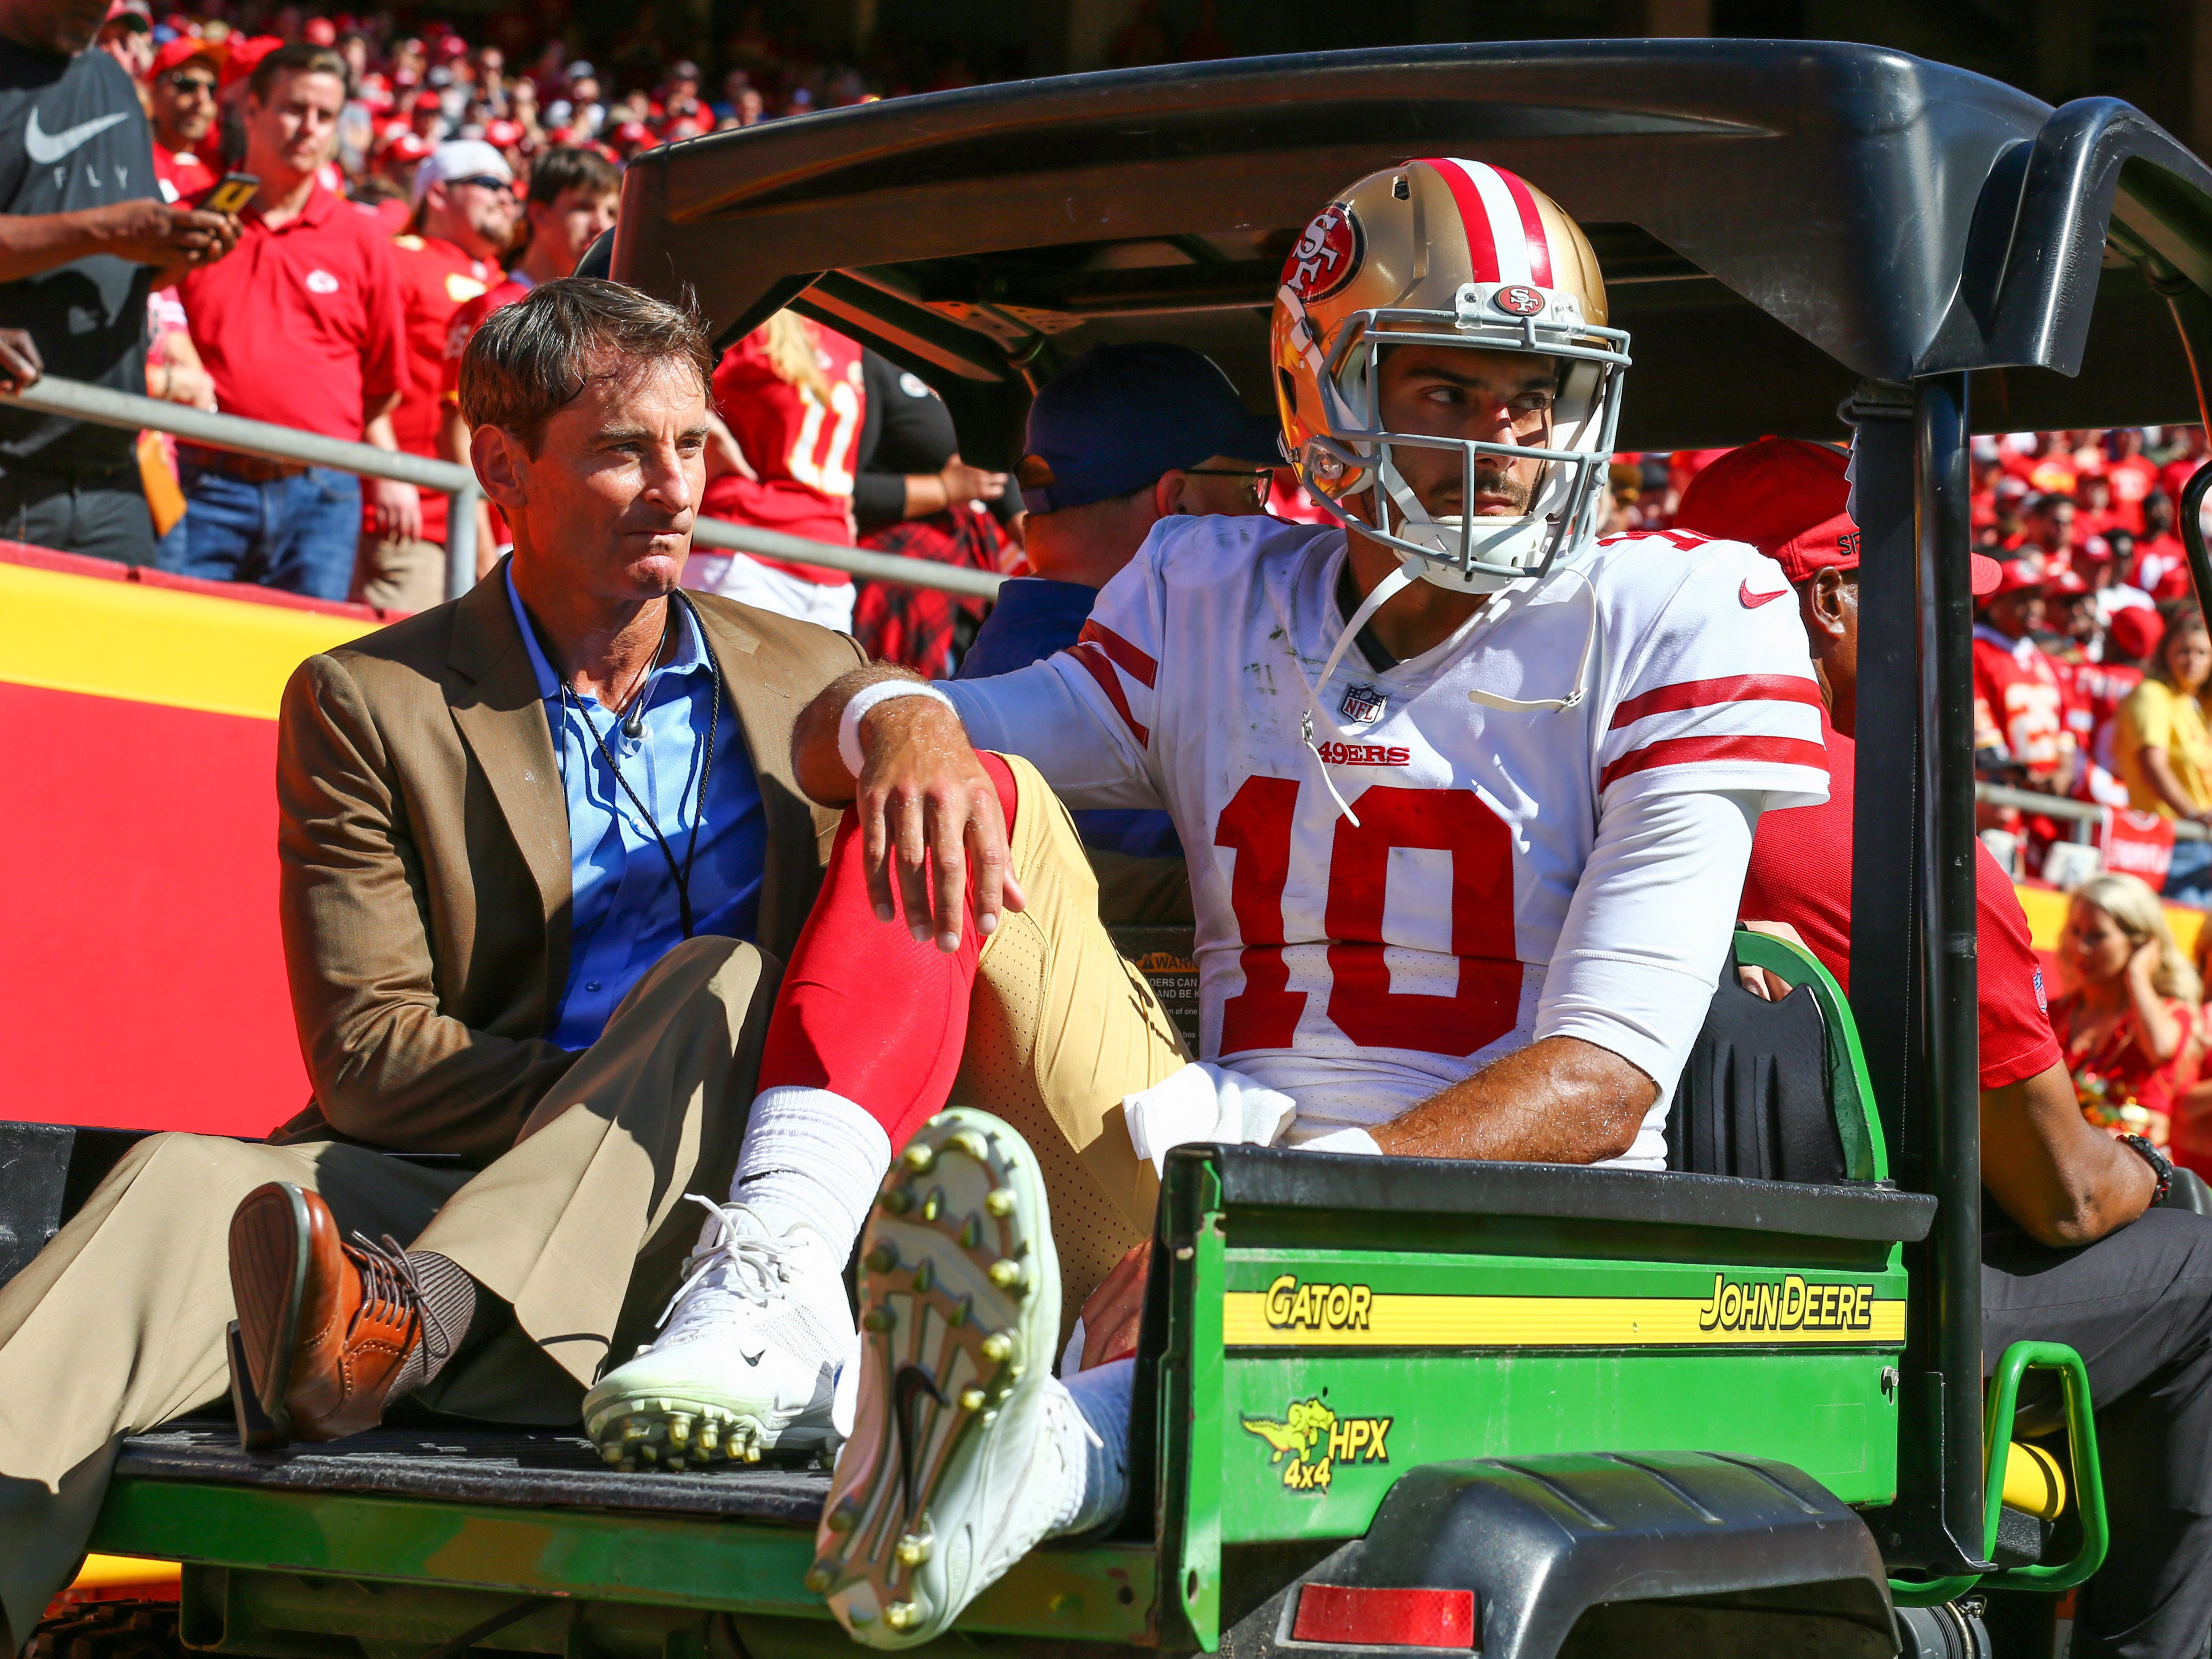 31. 49ers (25): Gold rushers now on pace to extract zero silver linings from this season in wake of Jimmy Garoppolo's devastating knee injury.